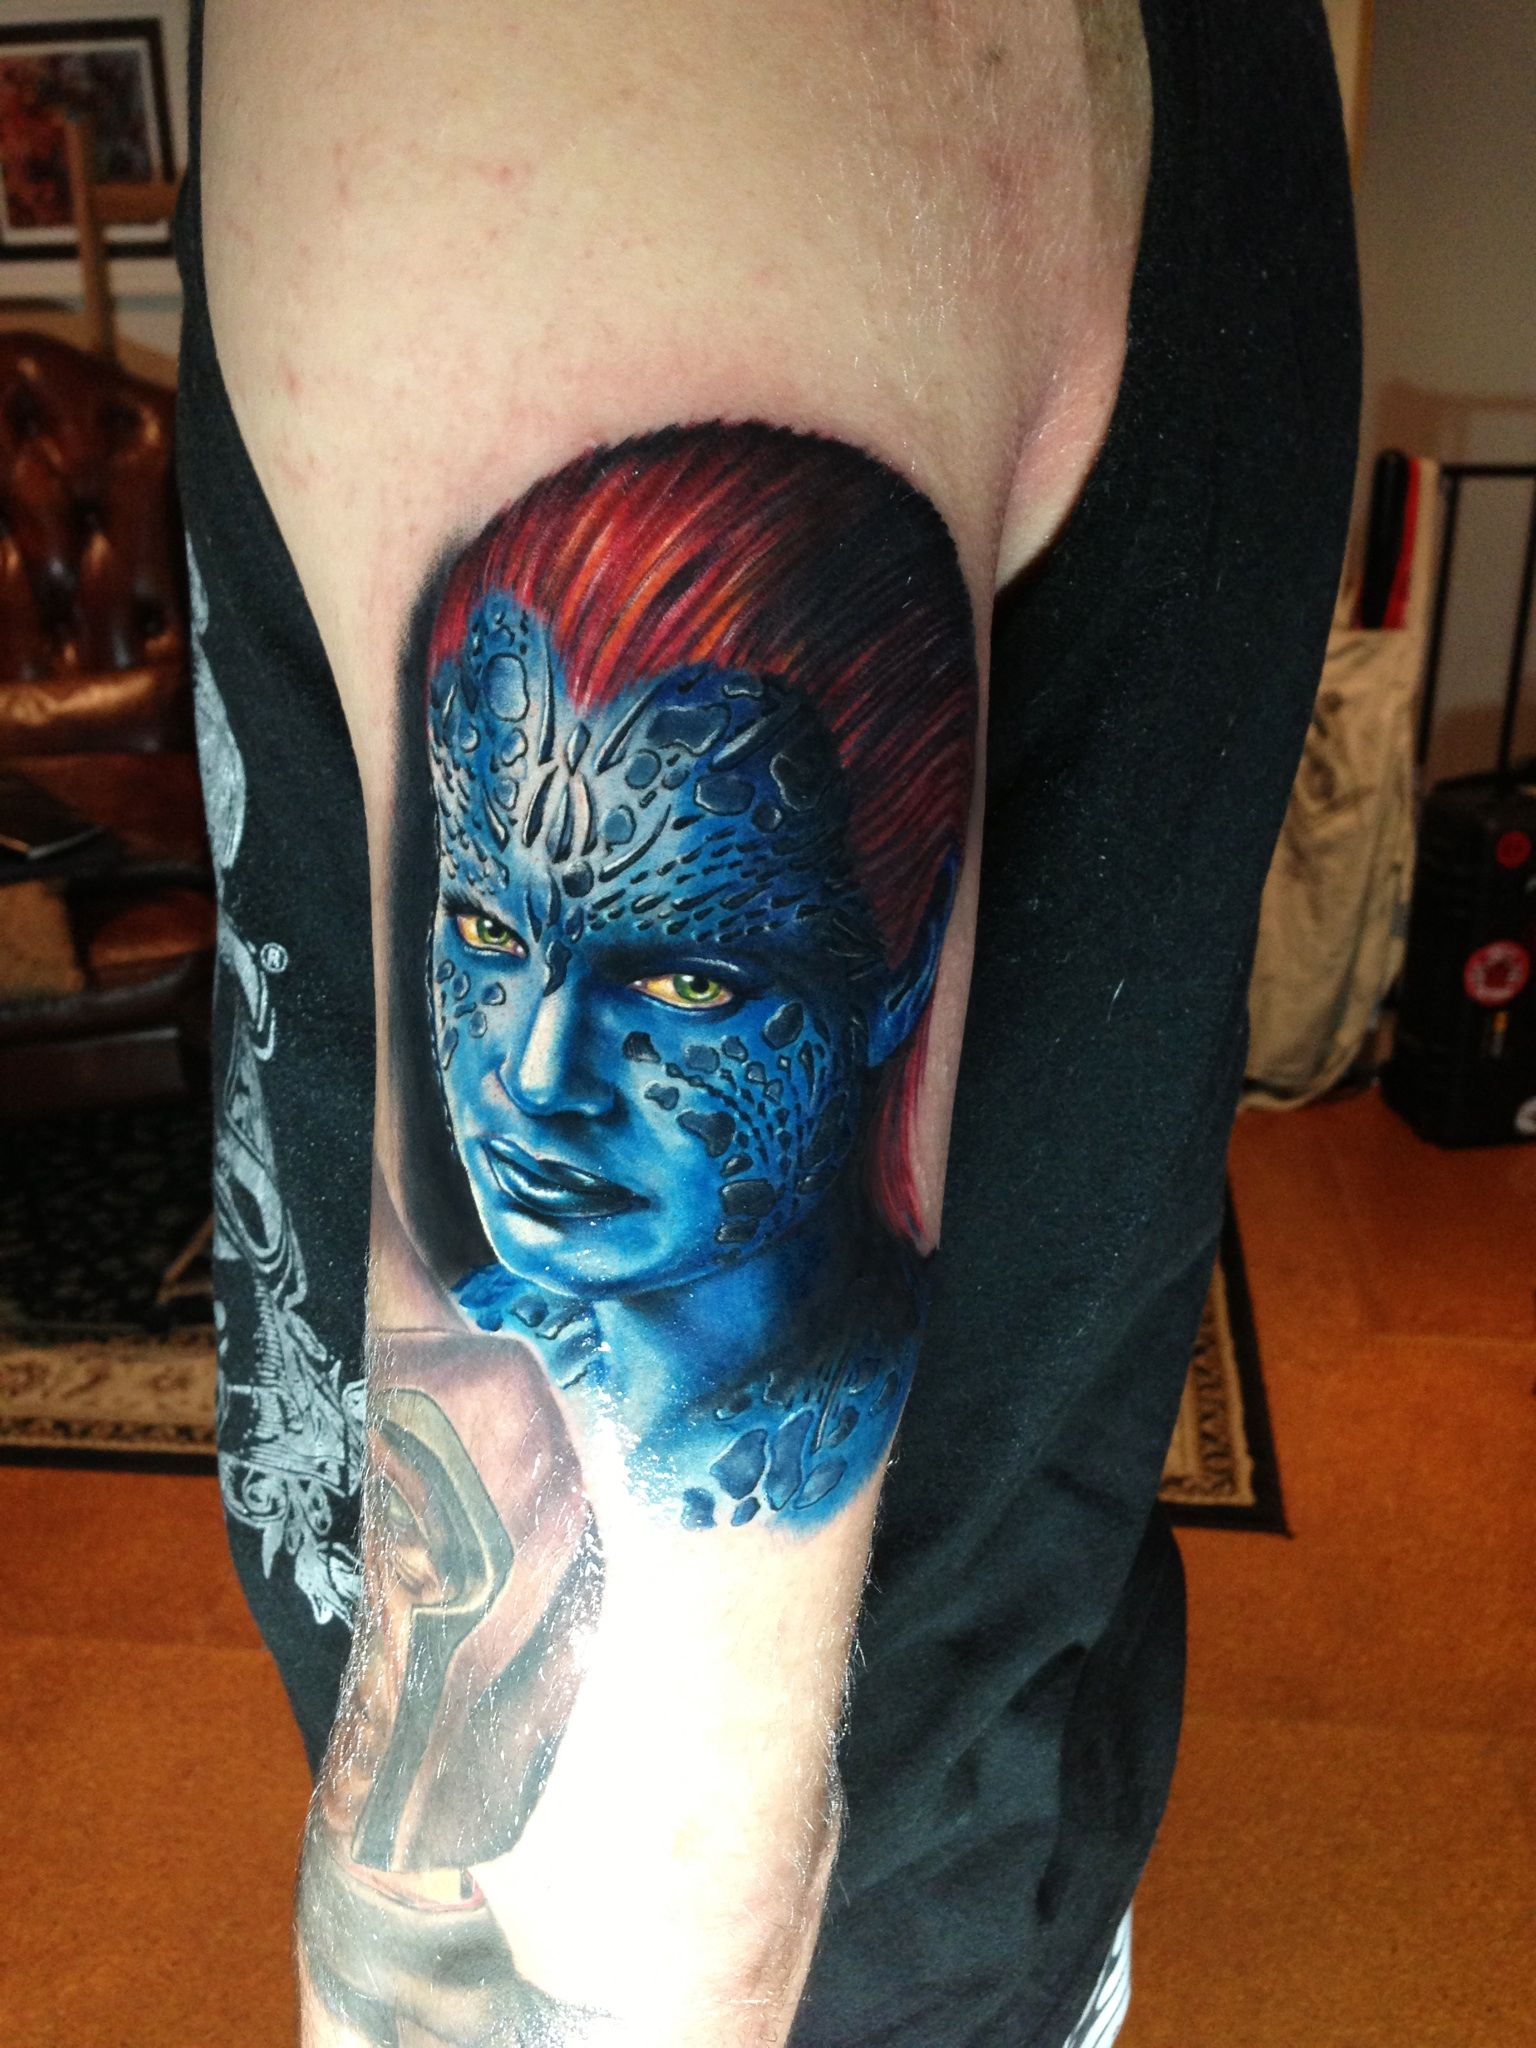 2 X 2 Tattoo: Mystique X Men Tattoo By Mick Squires Melbourne Australia